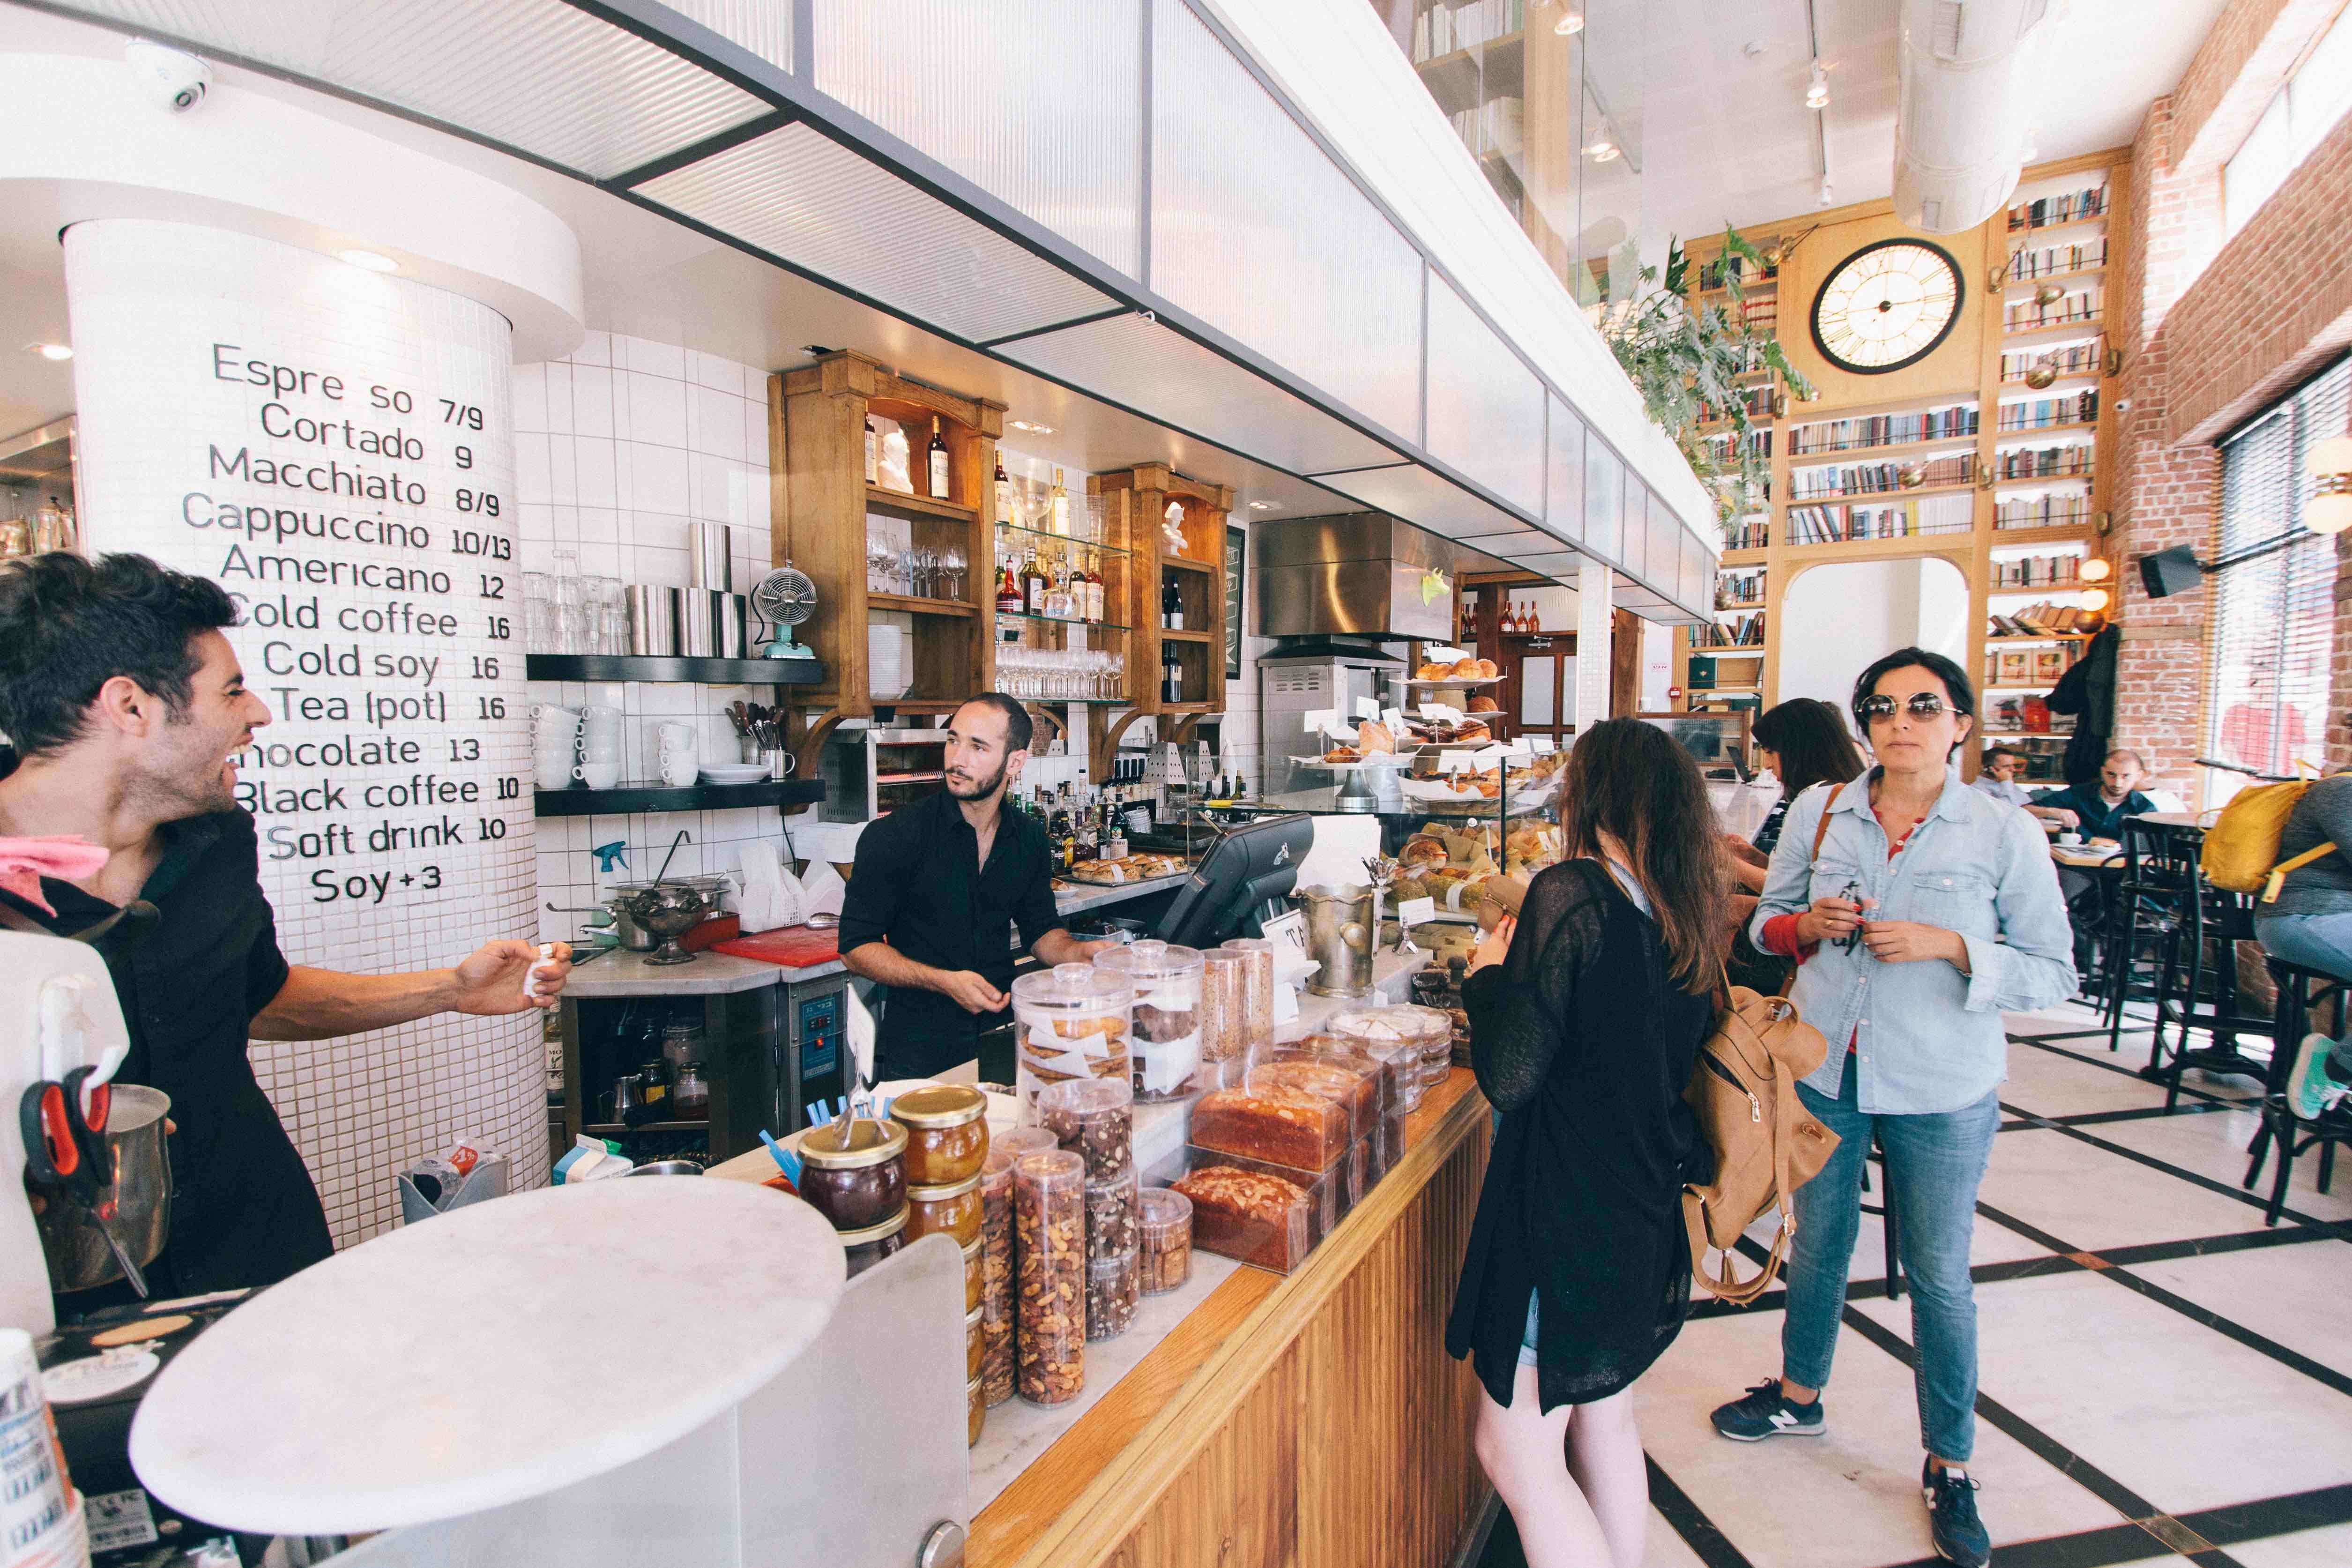 audience insights and the customer journey